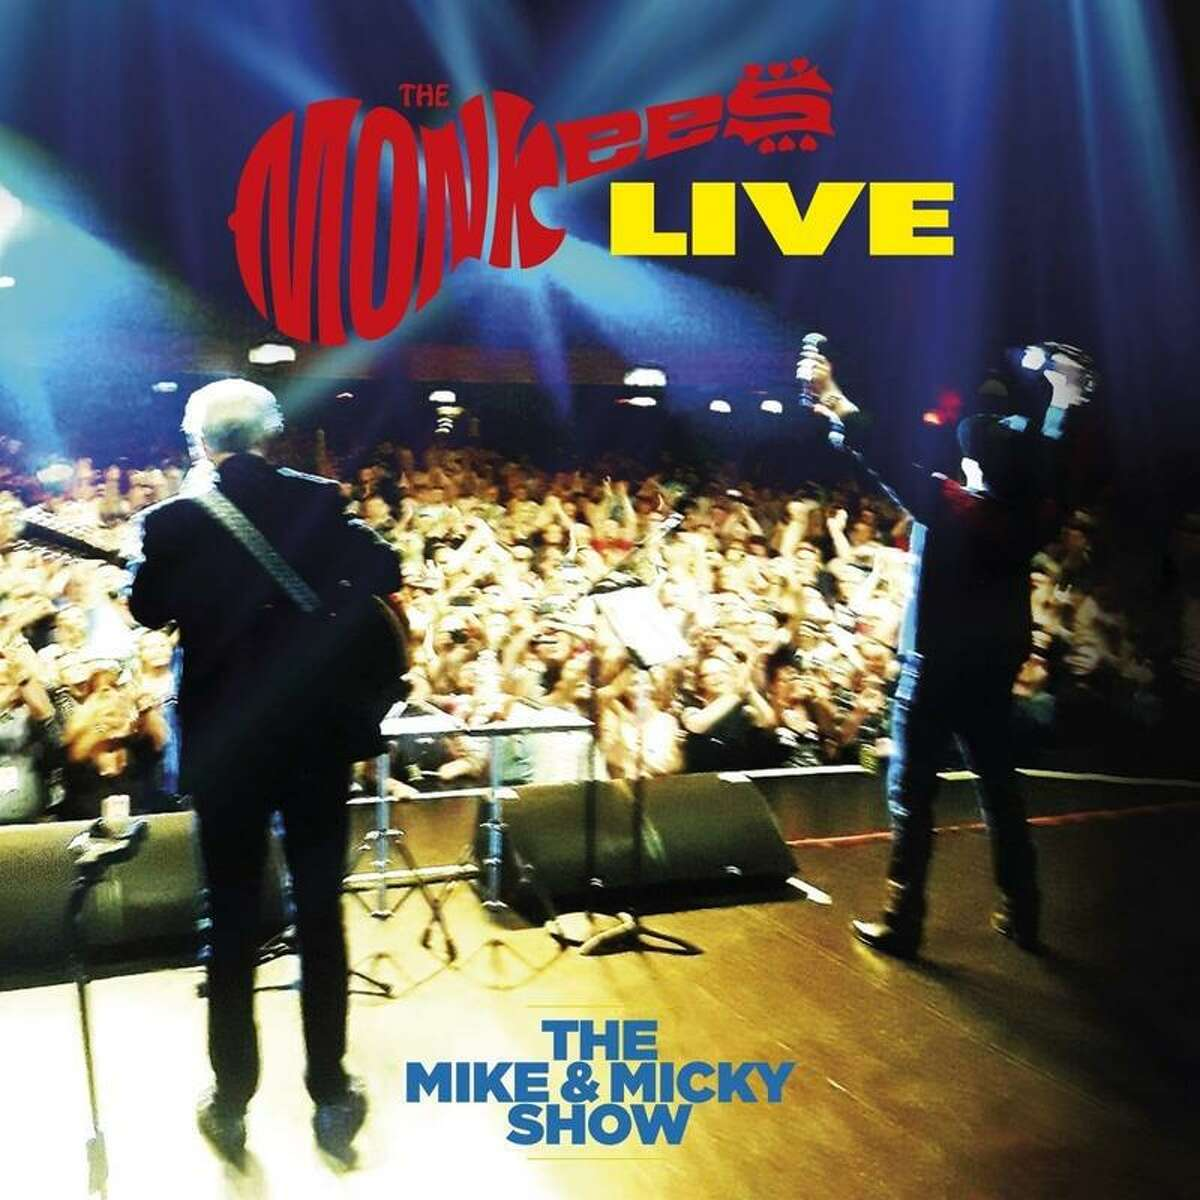 """Monkees bandmates Micky Dolenz and Michael Nesmith released a new album """"The Mike & Micky Show Live"""" on April 10."""